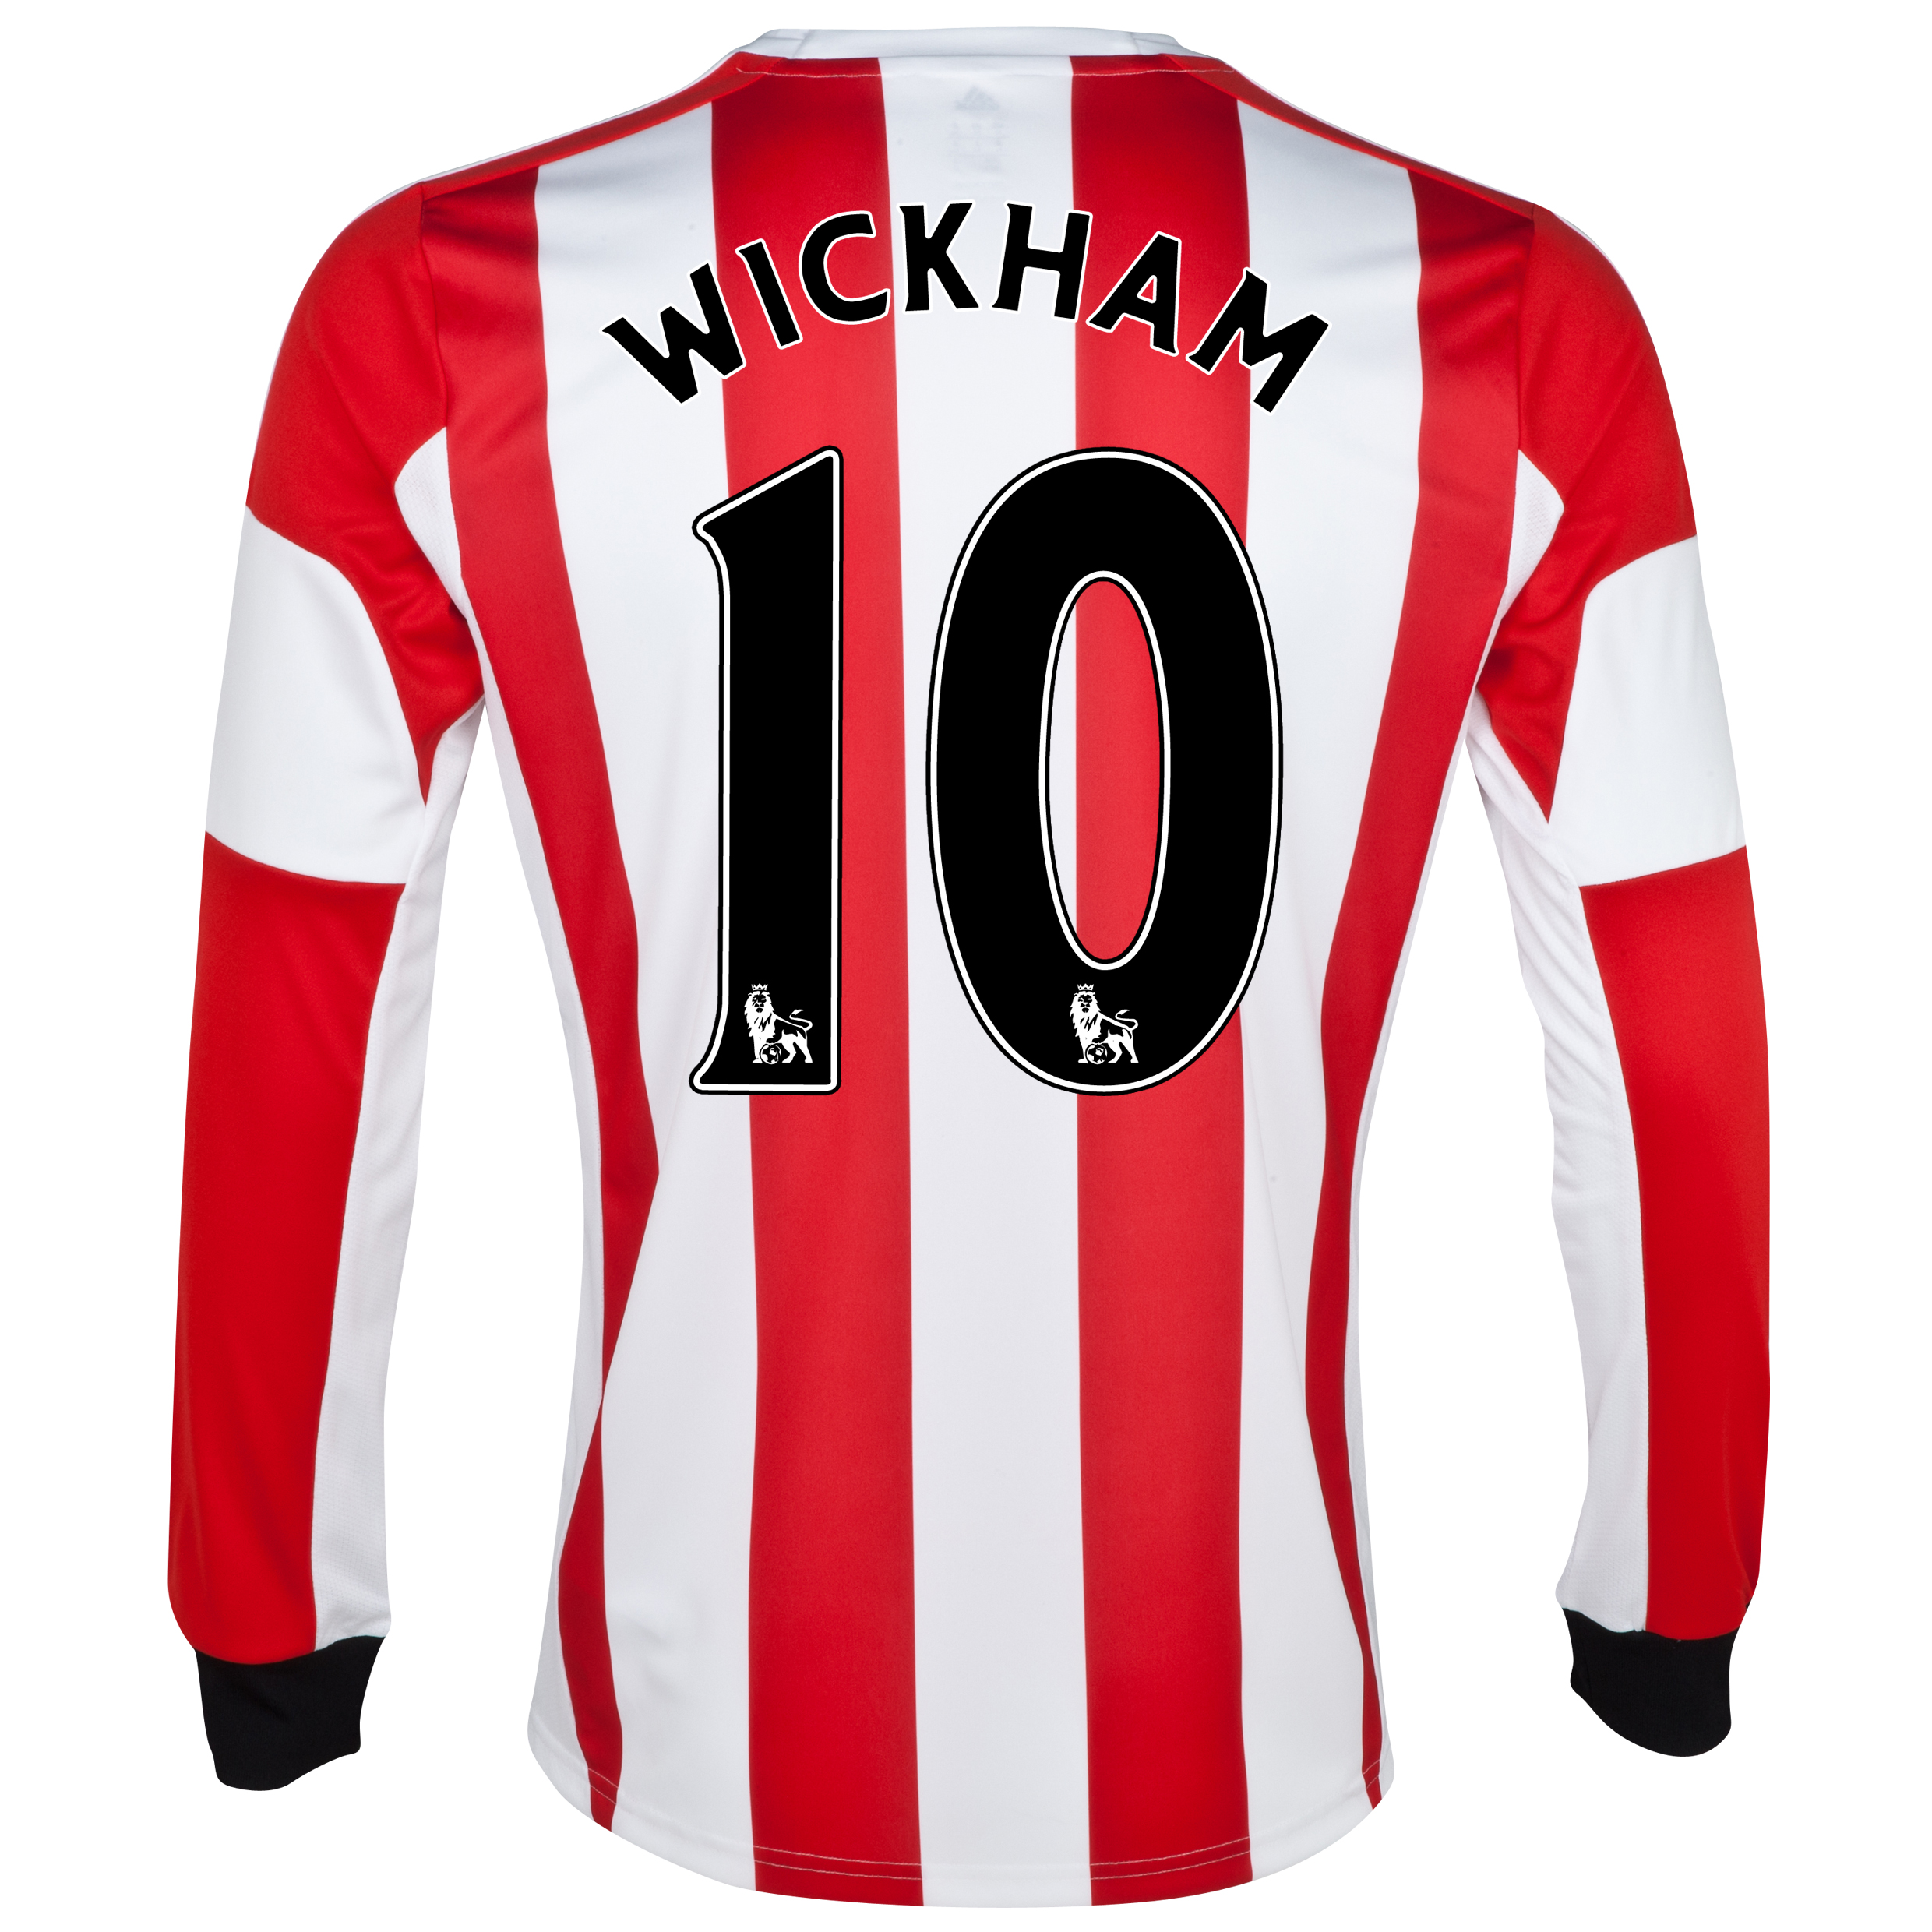 Sunderland Home Shirt 2013/14 - Long Sleeved  with Wickham 10 printing